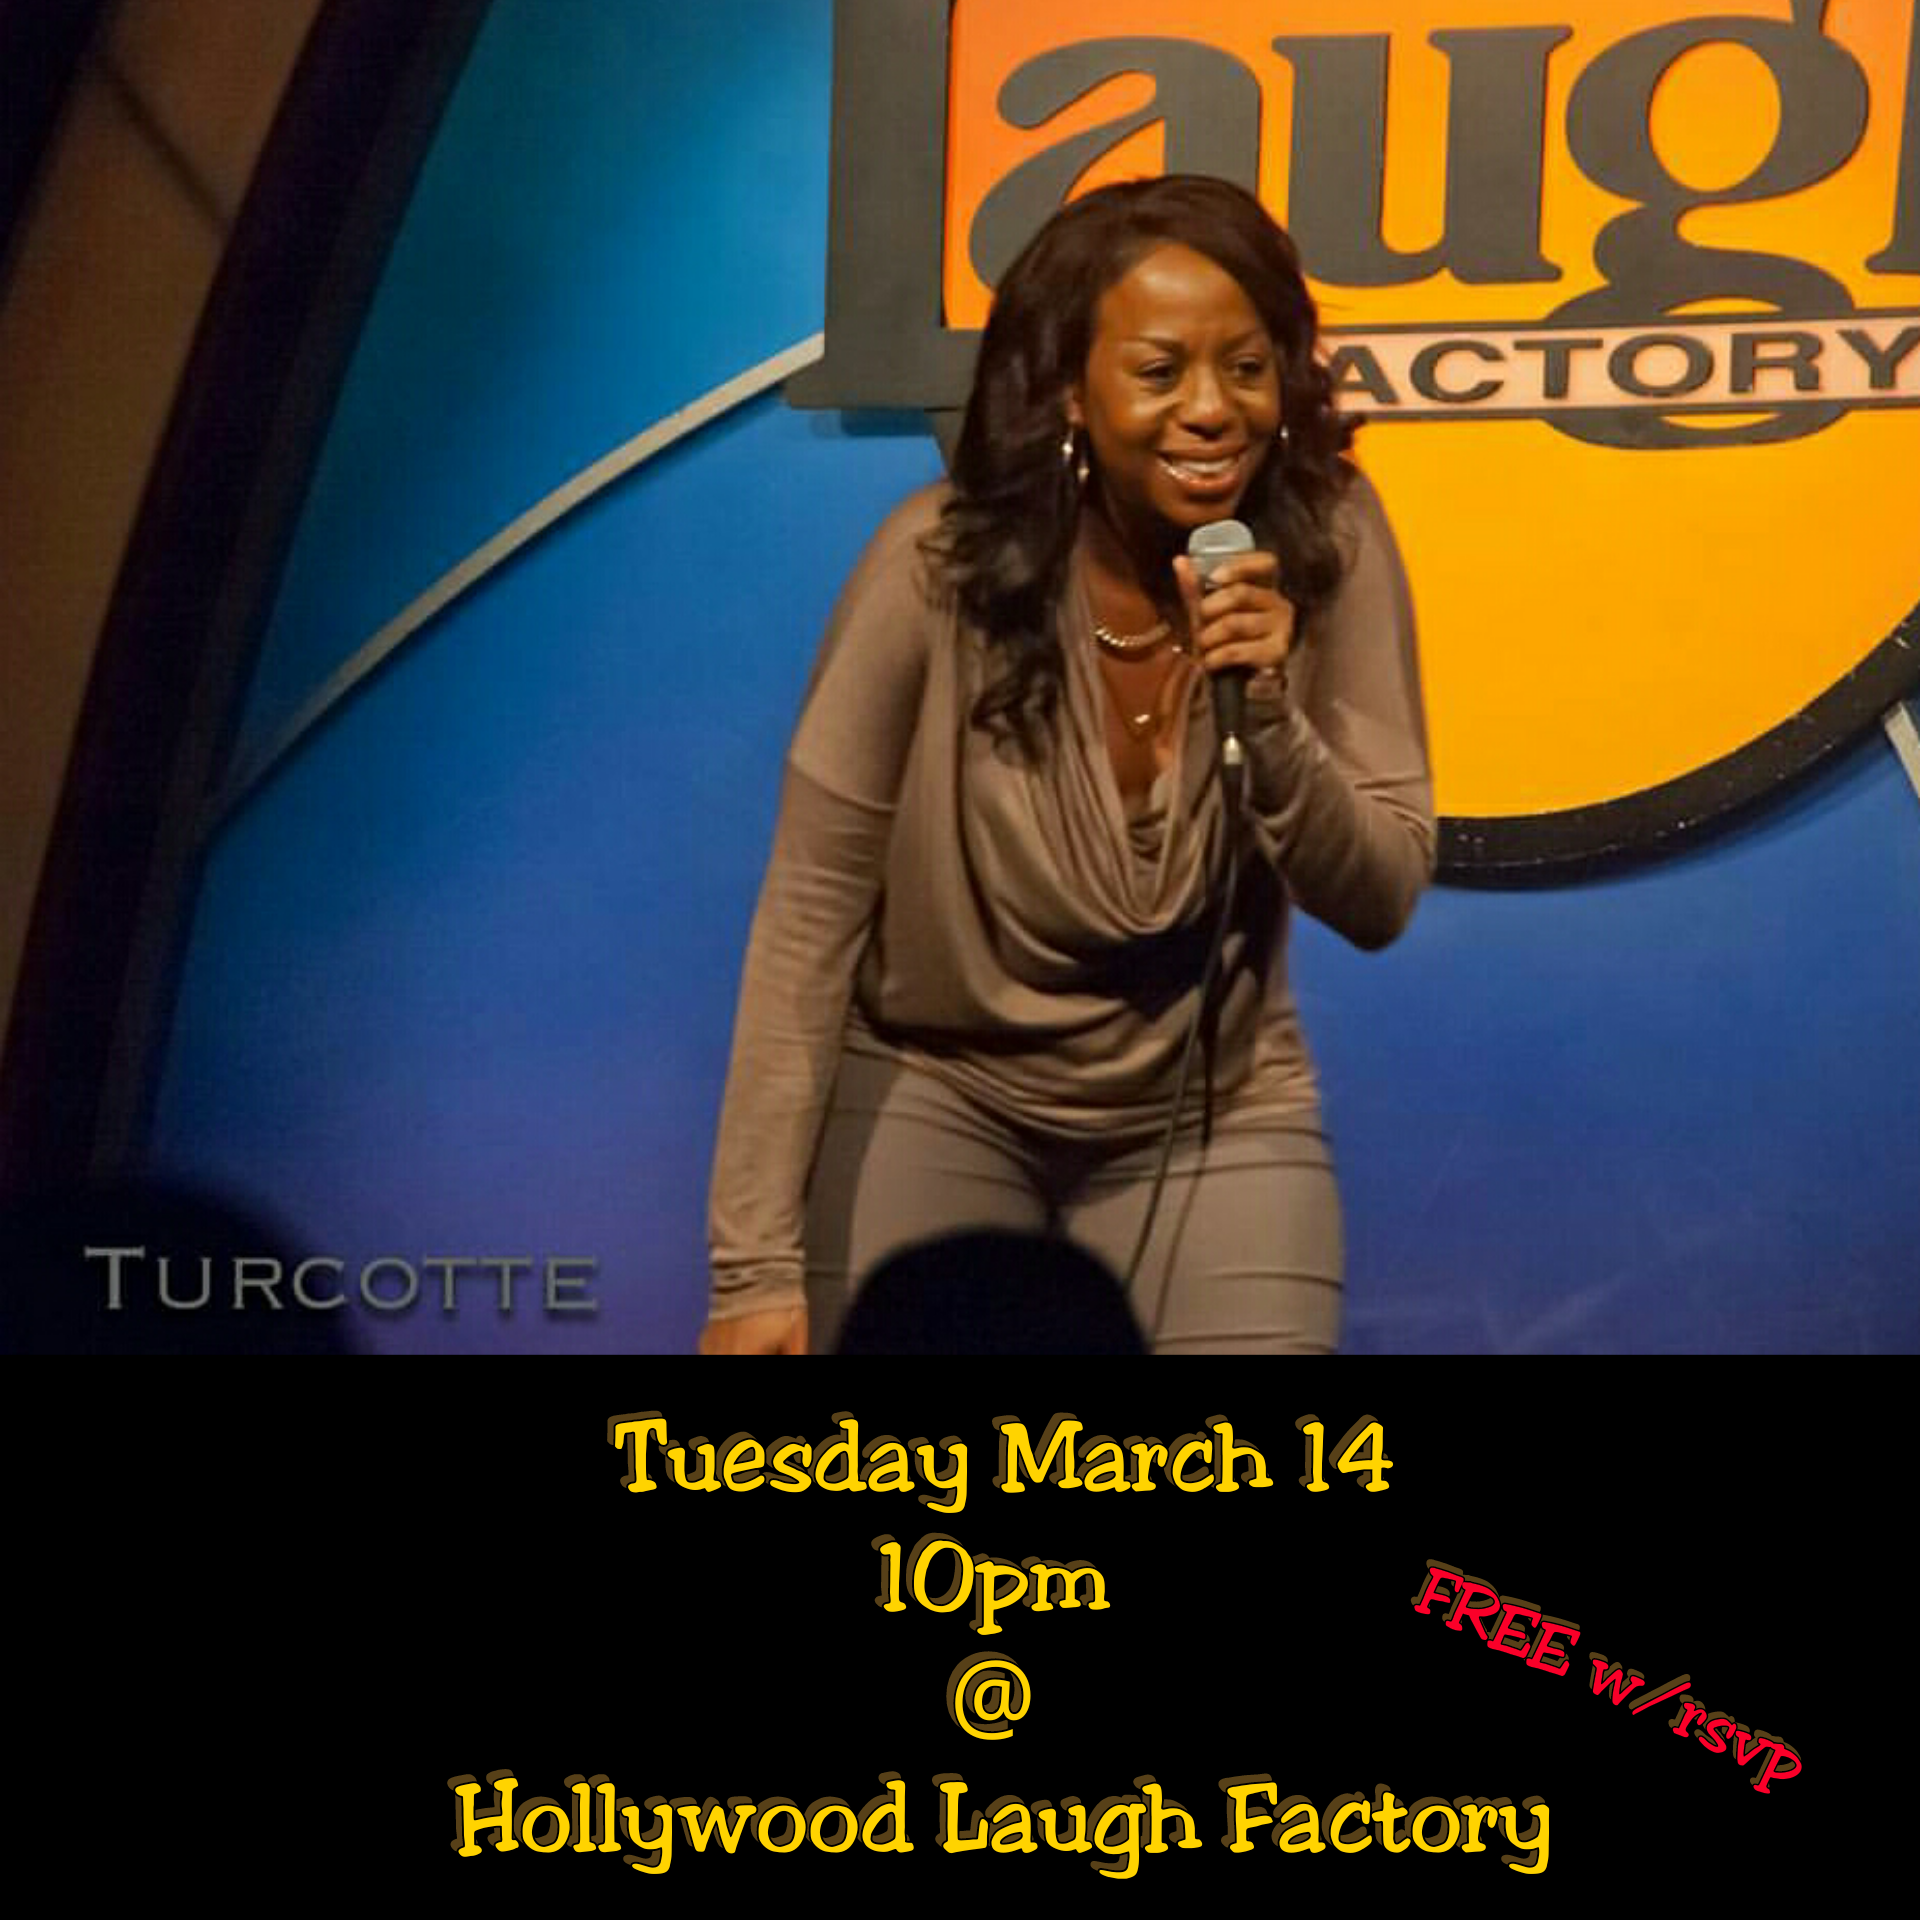 Laugh Factory #FunnyChickFlow